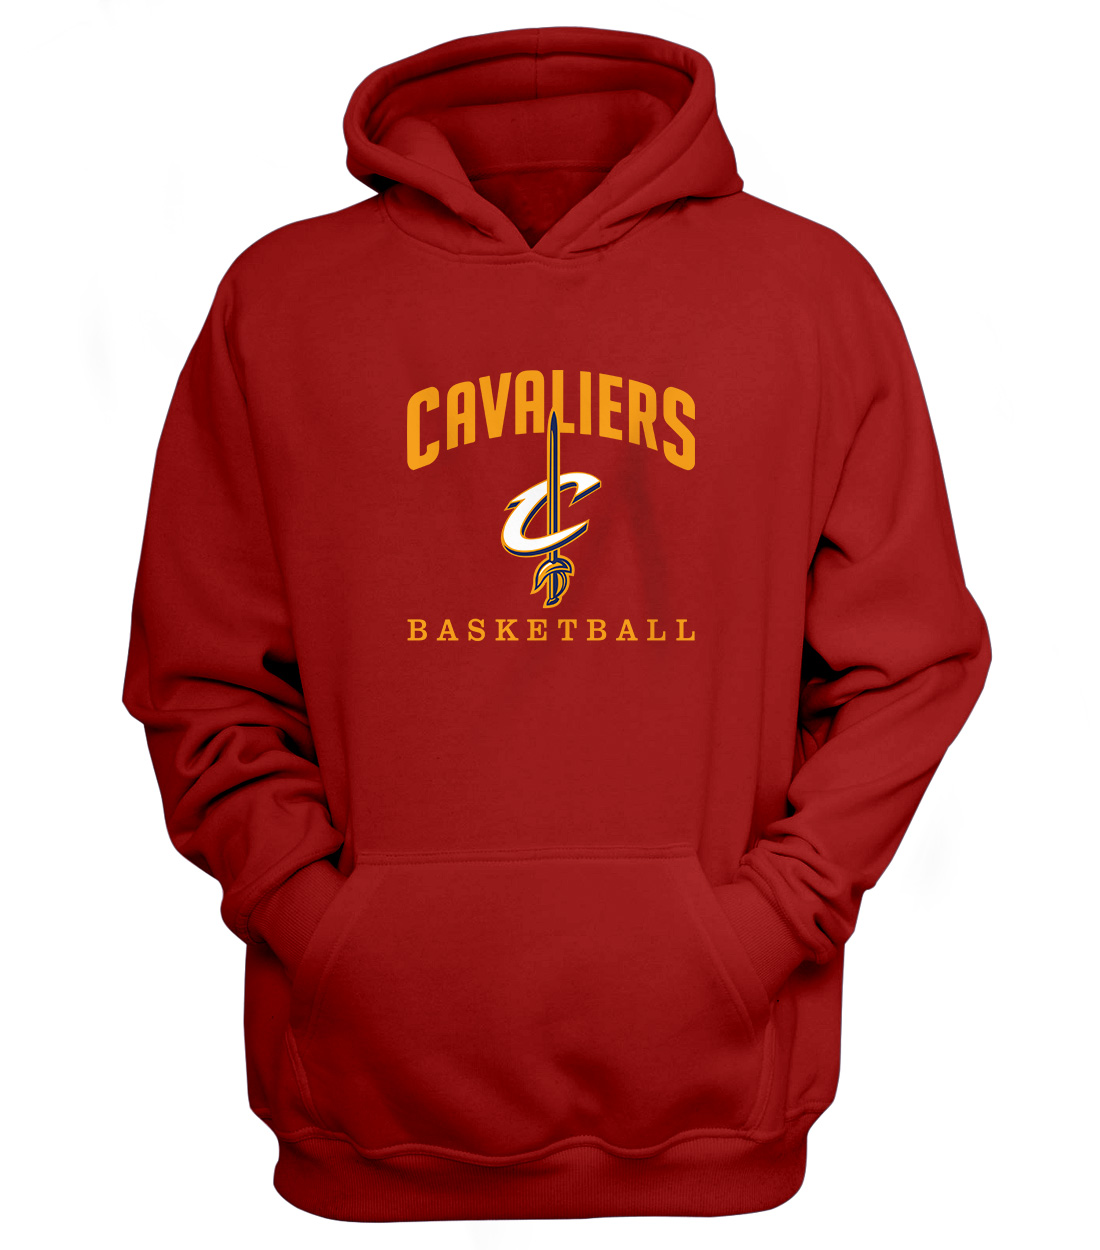 Cleveland Cavaliers Hoodie (HD-RED-NP-61-NBA-CLE-CAVS.ARCH)